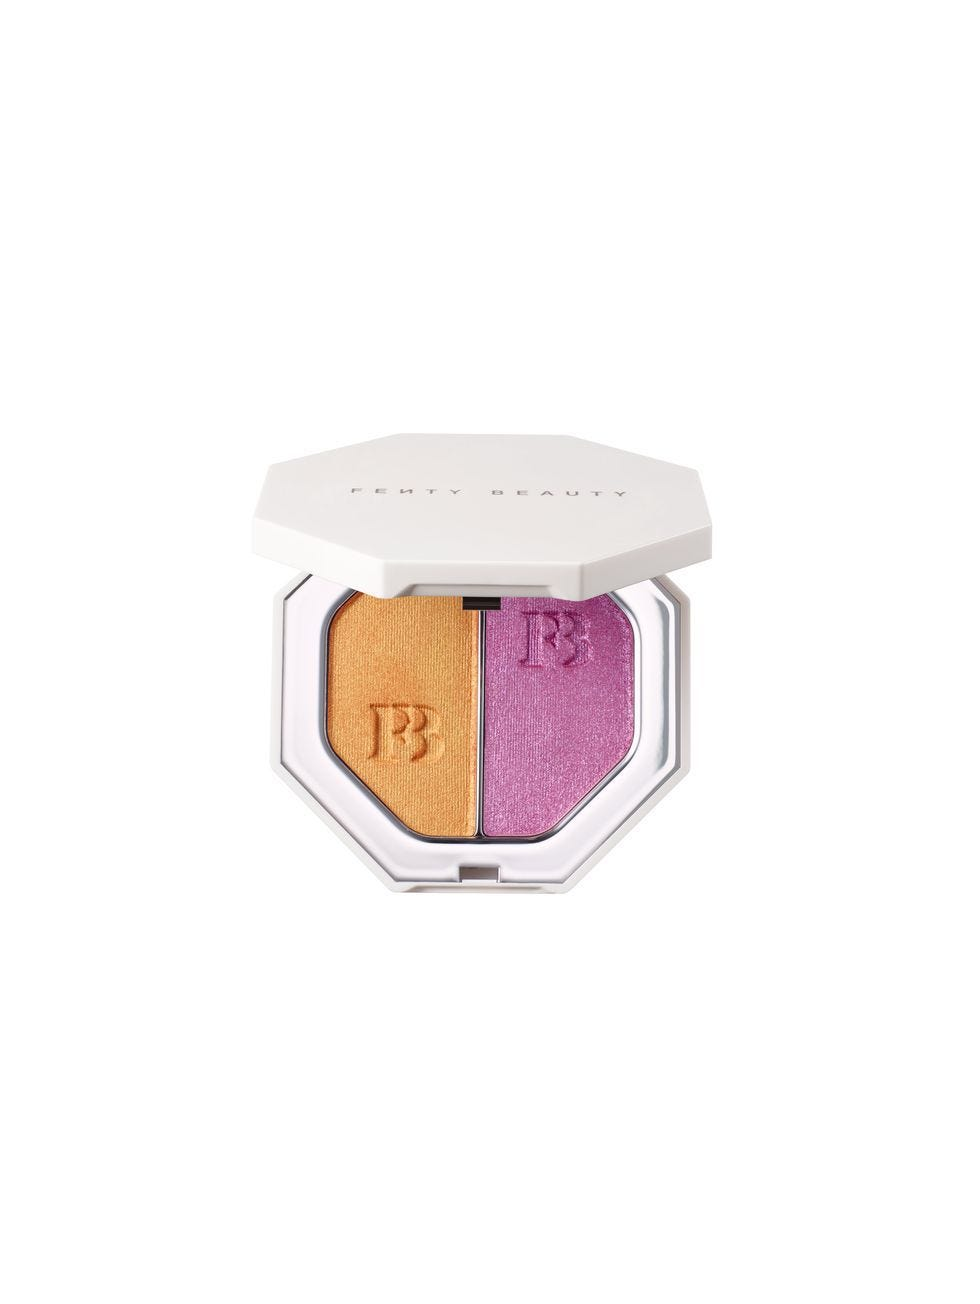 ef676e8ce73b The Best New Summer Makeup Launches From Sephora